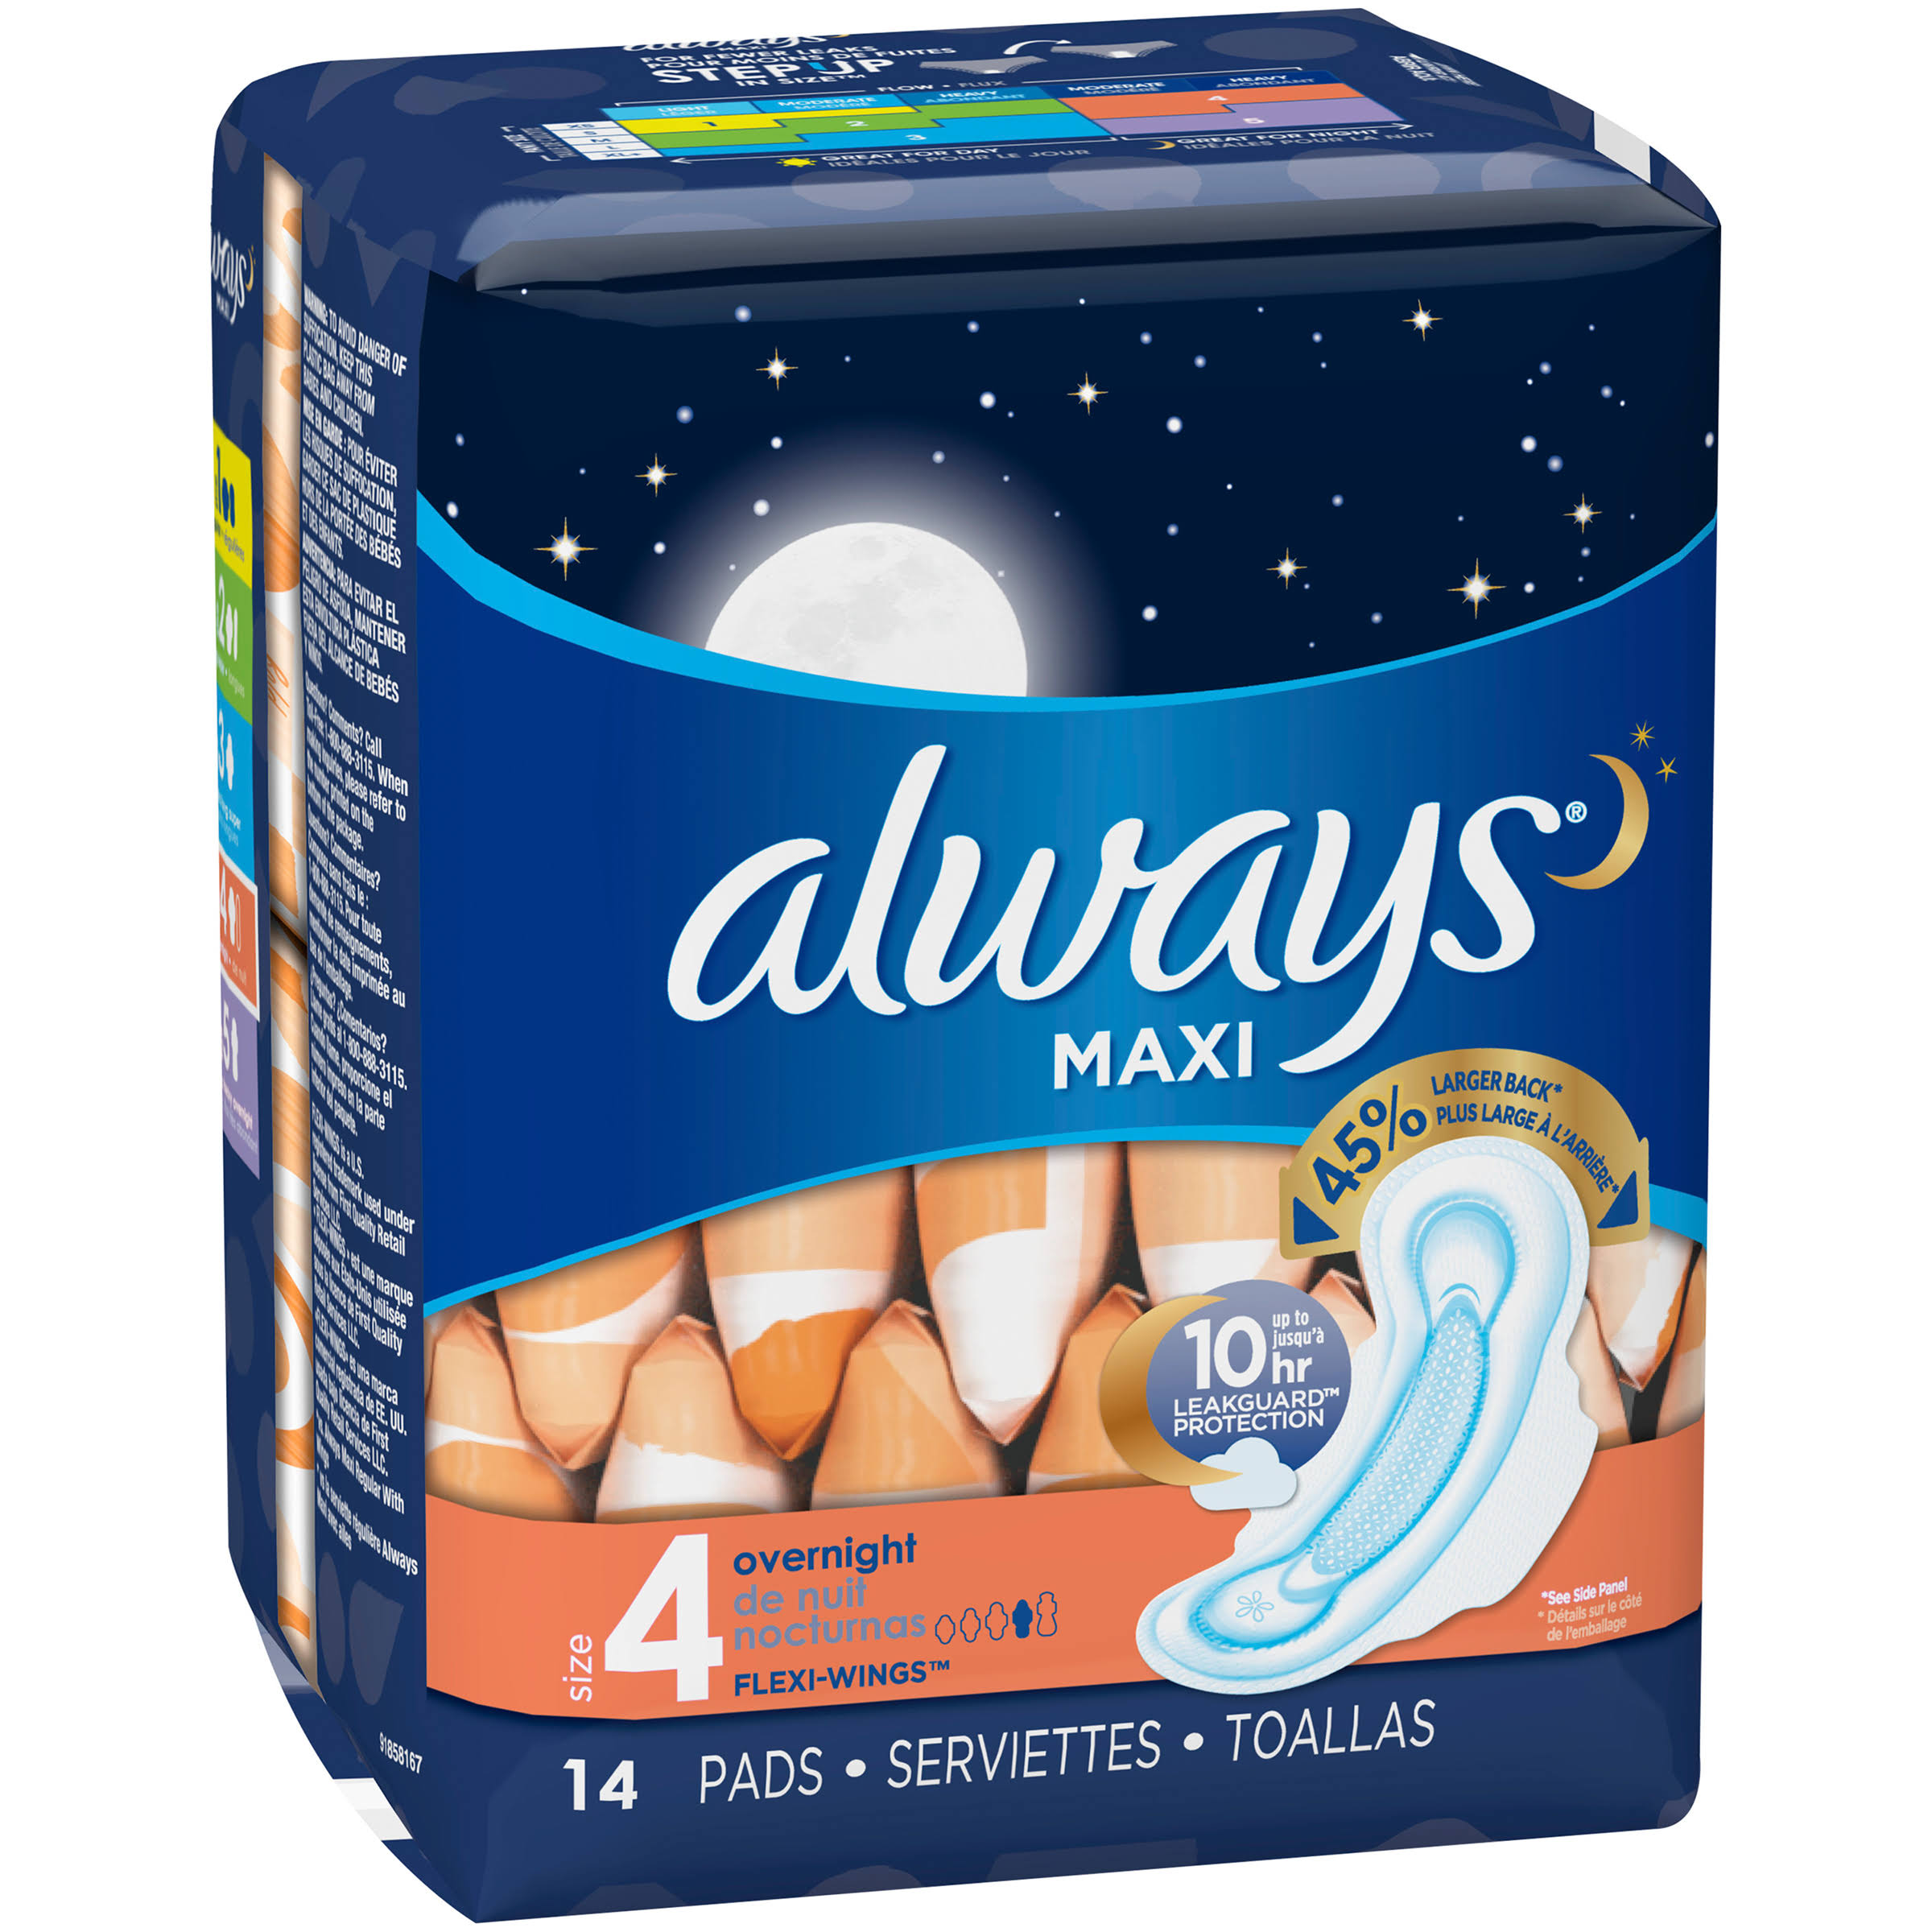 Always Maxi Flexi-Wings Overnight Pads - 14 Pads